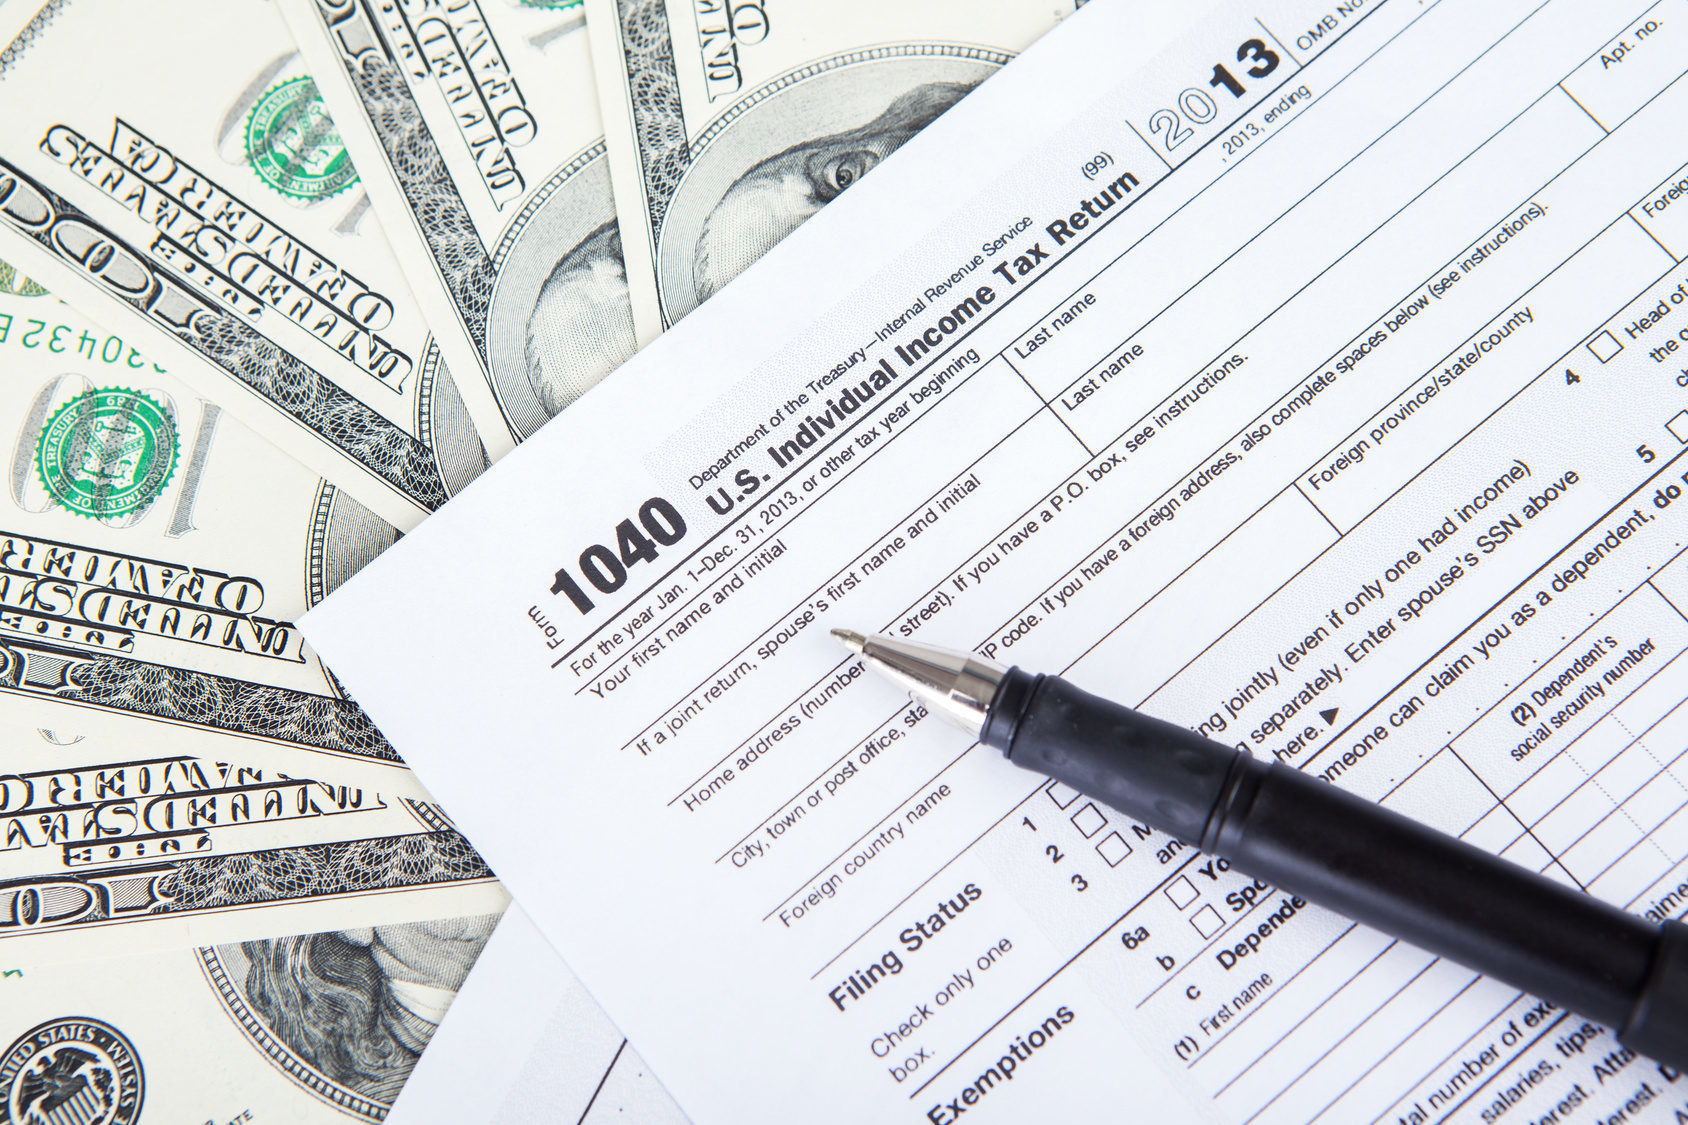 Eitc What It Is And How To Get It